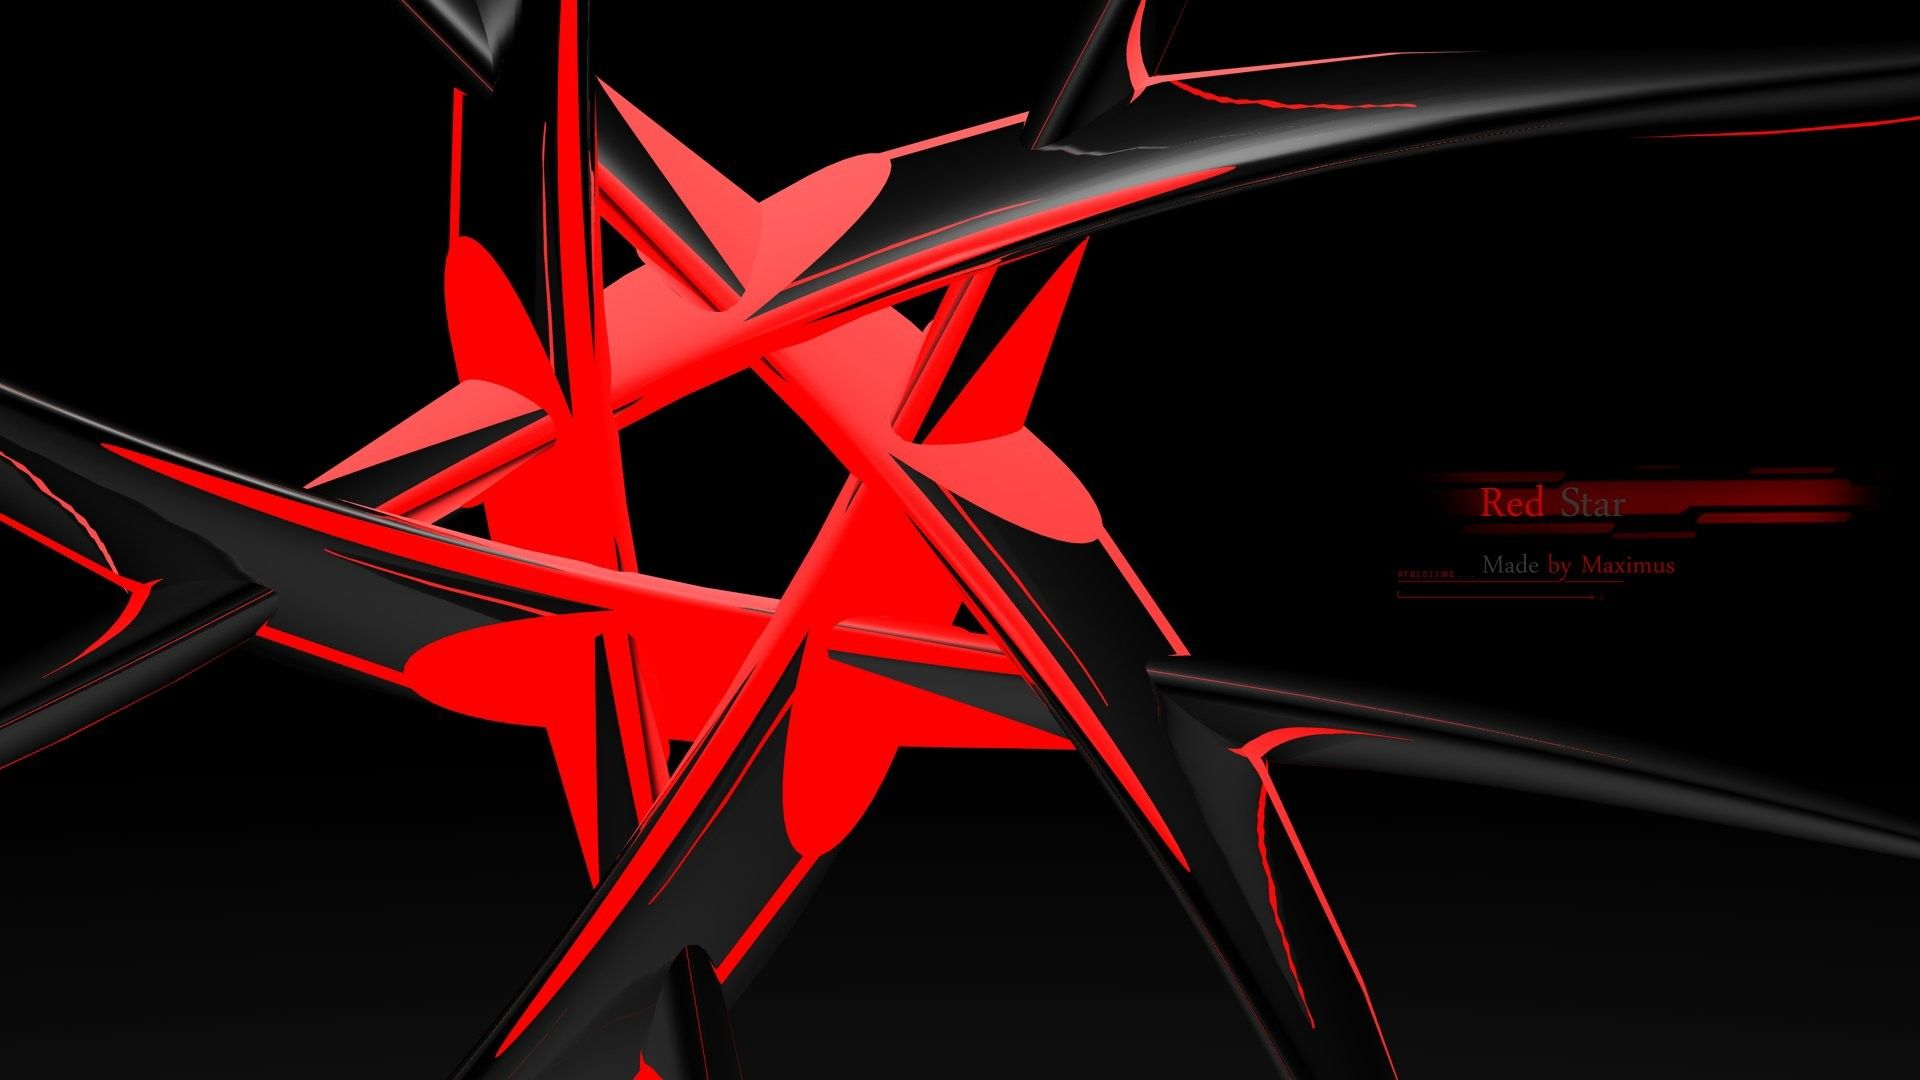 Red And Black 4k Wallpaper 53 Images Anime Wallpaper Android Wallpaper Anime Anime Wallpaper 1920x1080 Anime red and black wallpaper